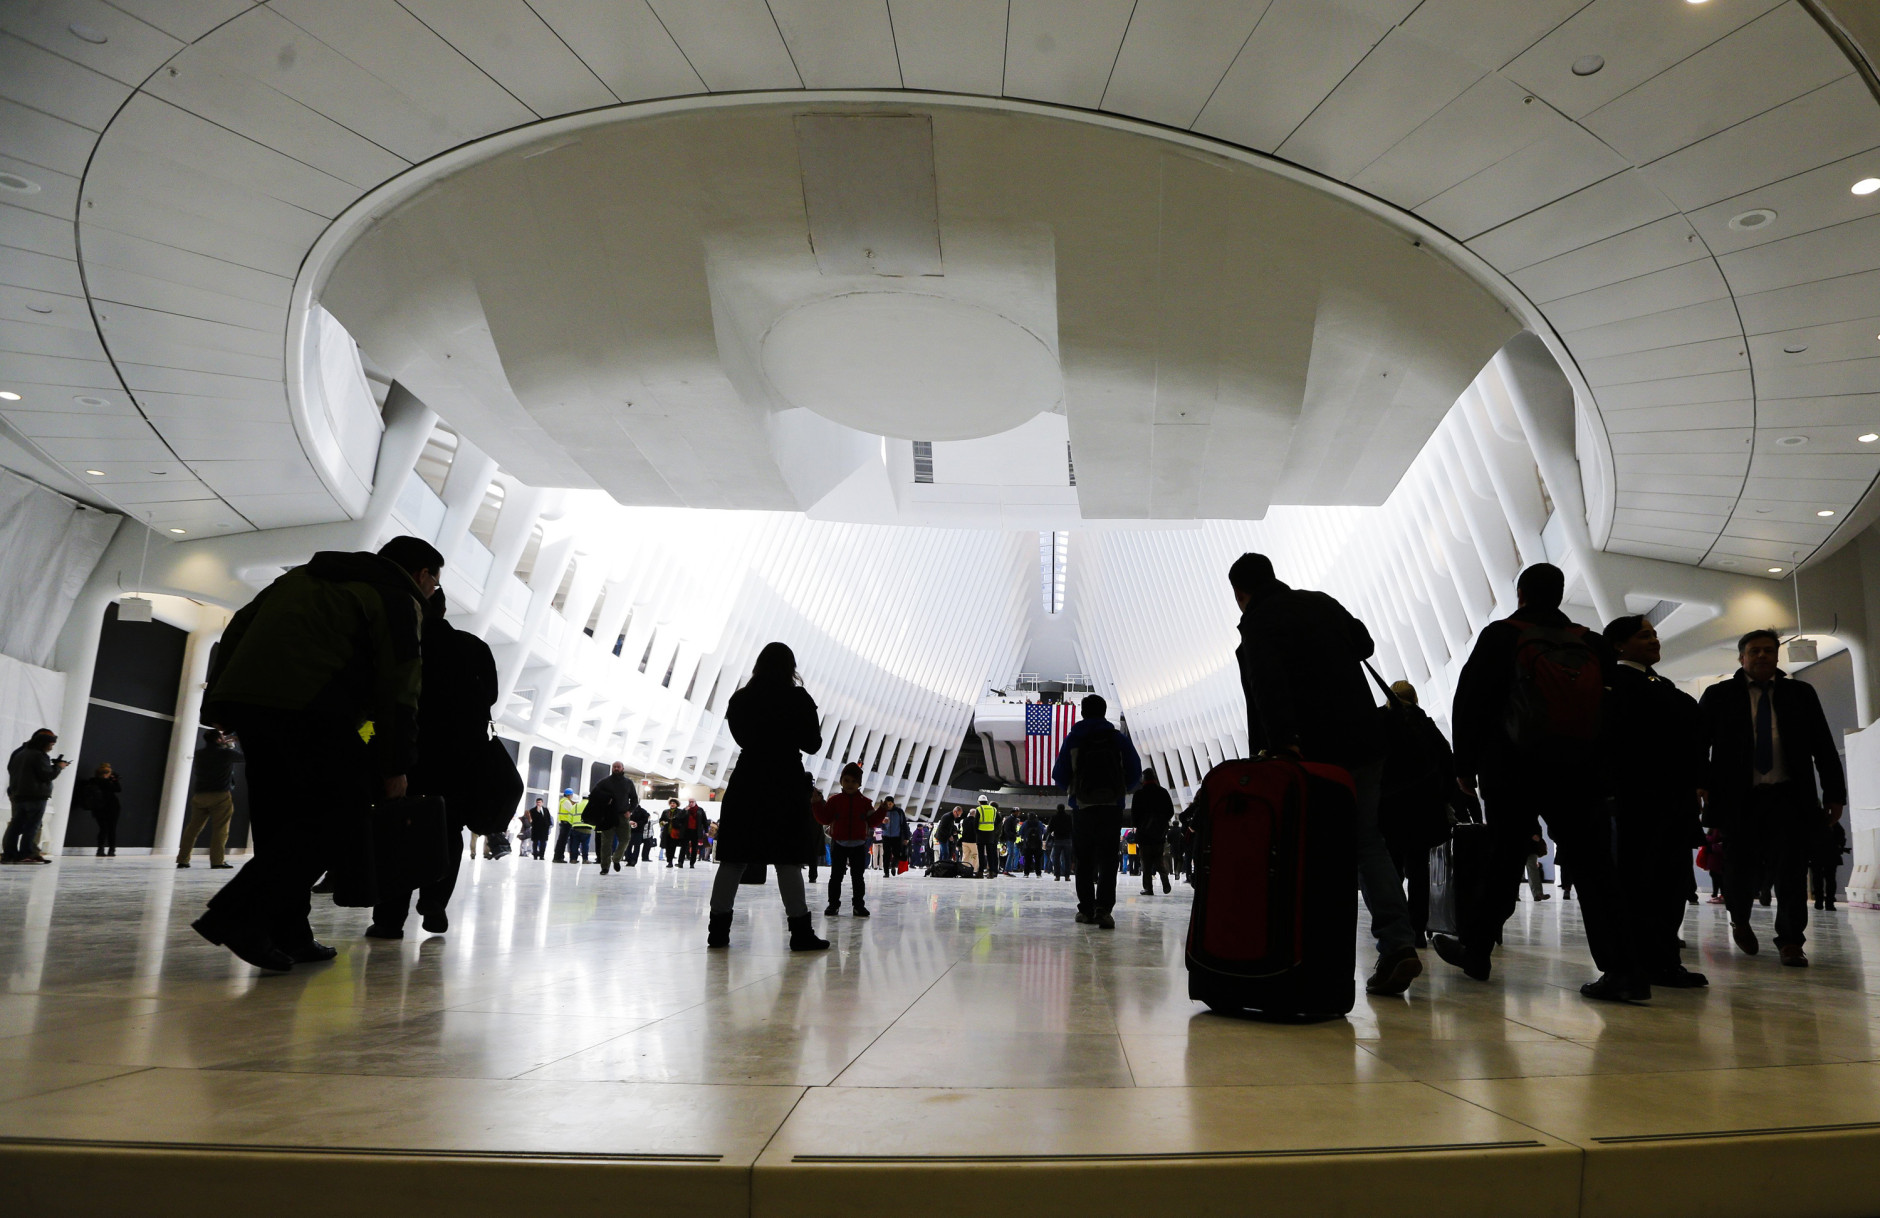 FILE - In this March 3, 2016 file photo, pedestrians walk inside the Oculus, the new transit station at the World Trade Center in New York. Vexing water leaks have caused delays in the opening of an underground shopping mall built within the $3.9 billion commuter train terminal beneath the World Trade Center complex. (AP Photo/Frank Franklin II, File)